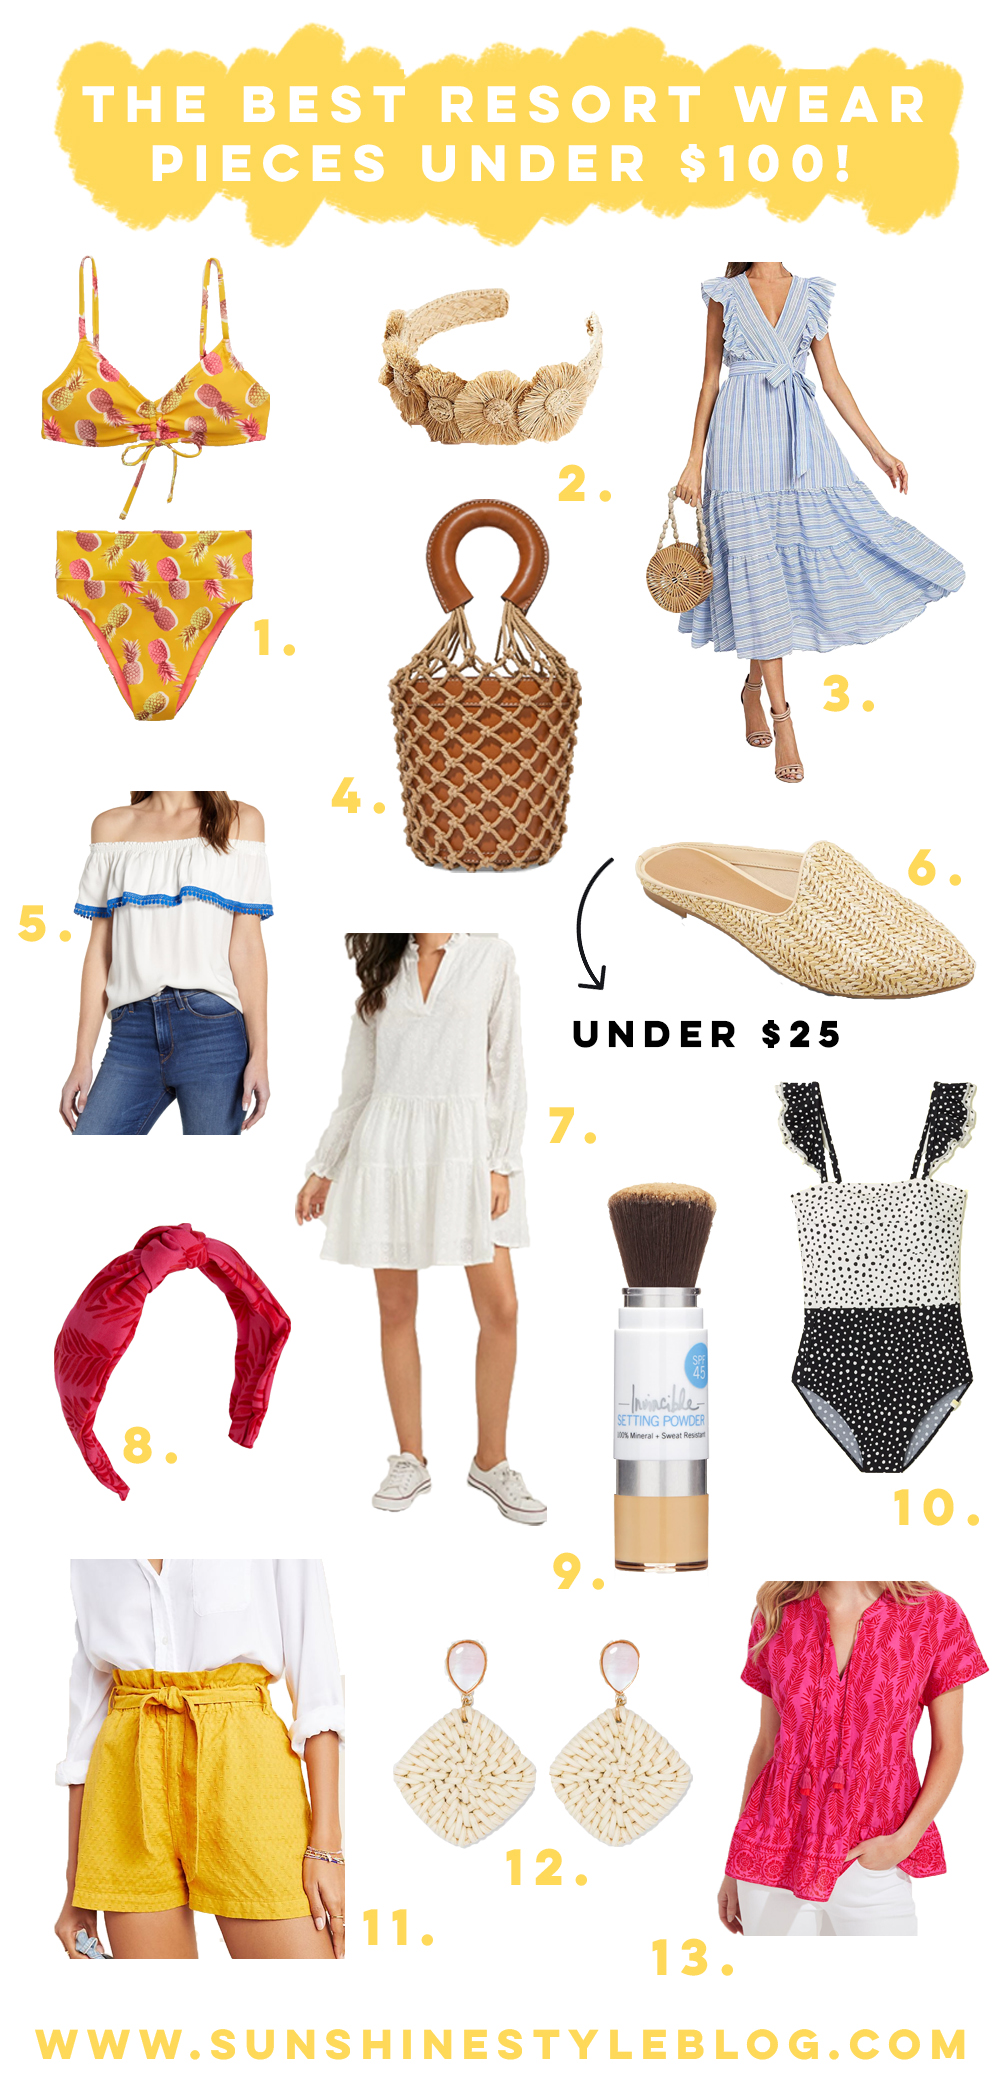 Resort Wear Pieces Under $100 / What to Wear for Spring Break / What to Wear on a Beach Vacation / Warm Weather Getaway / Resort Wear 2020 / Amazon Dress / Raffia Accessories / Straw Bag / Beach Cover Up / Florida Fashion Finds / What to Wear in March in Florida - Sunshine Style, A Florida Based Fashion Blog by Katie McCarty